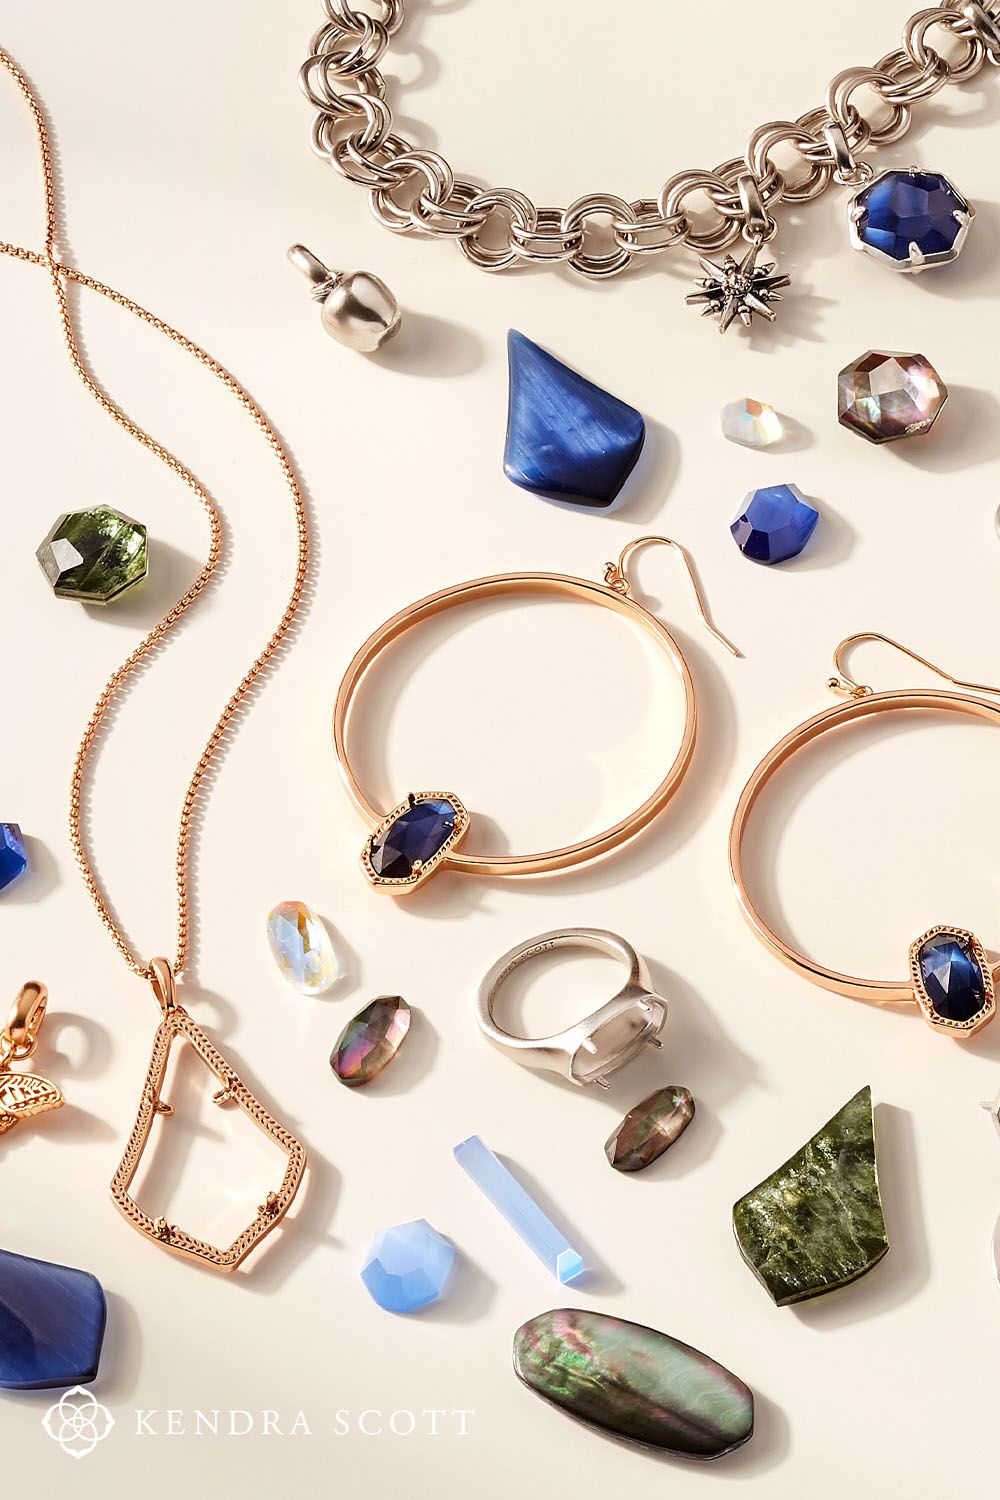 Create Personalized Jewelry To Match Your Personal Style At The Color Bar By Kendra Scott You Can Design Yo Jewelry How To Make Necklaces Personalized Jewelry